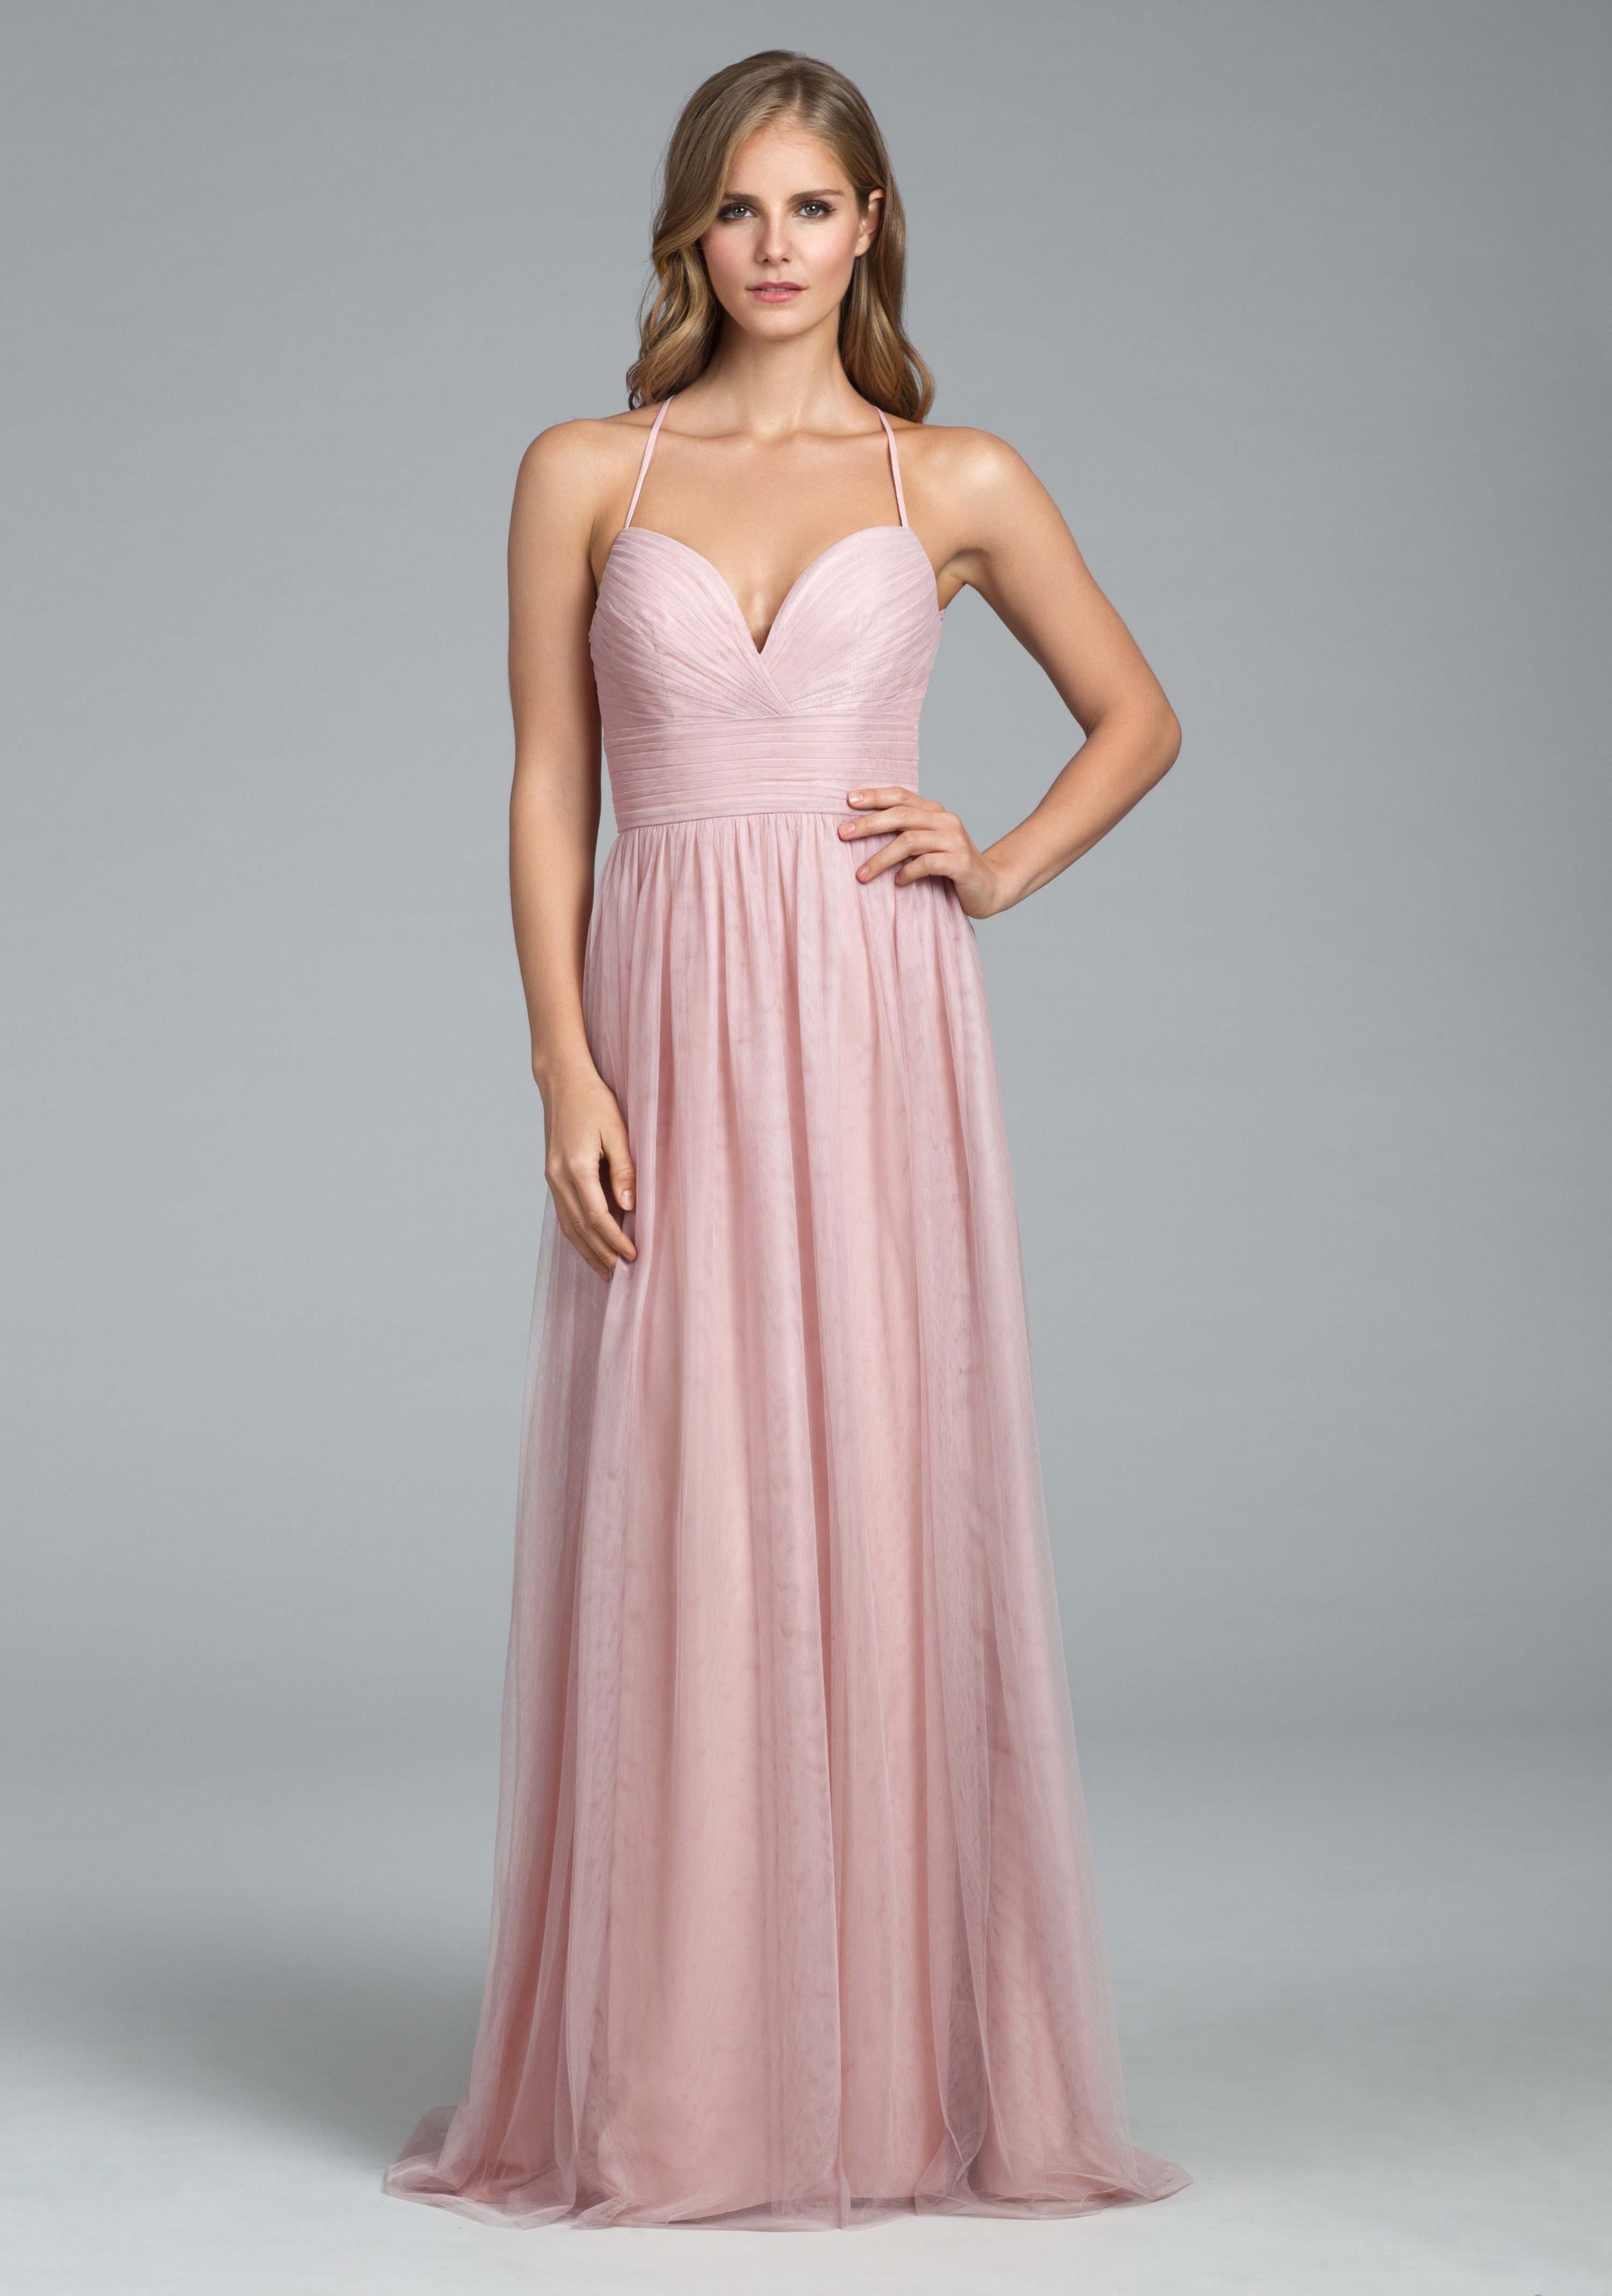 hayley-paige-occasions-bridesmaids-and-special-occasion-spring-2018-style-5802